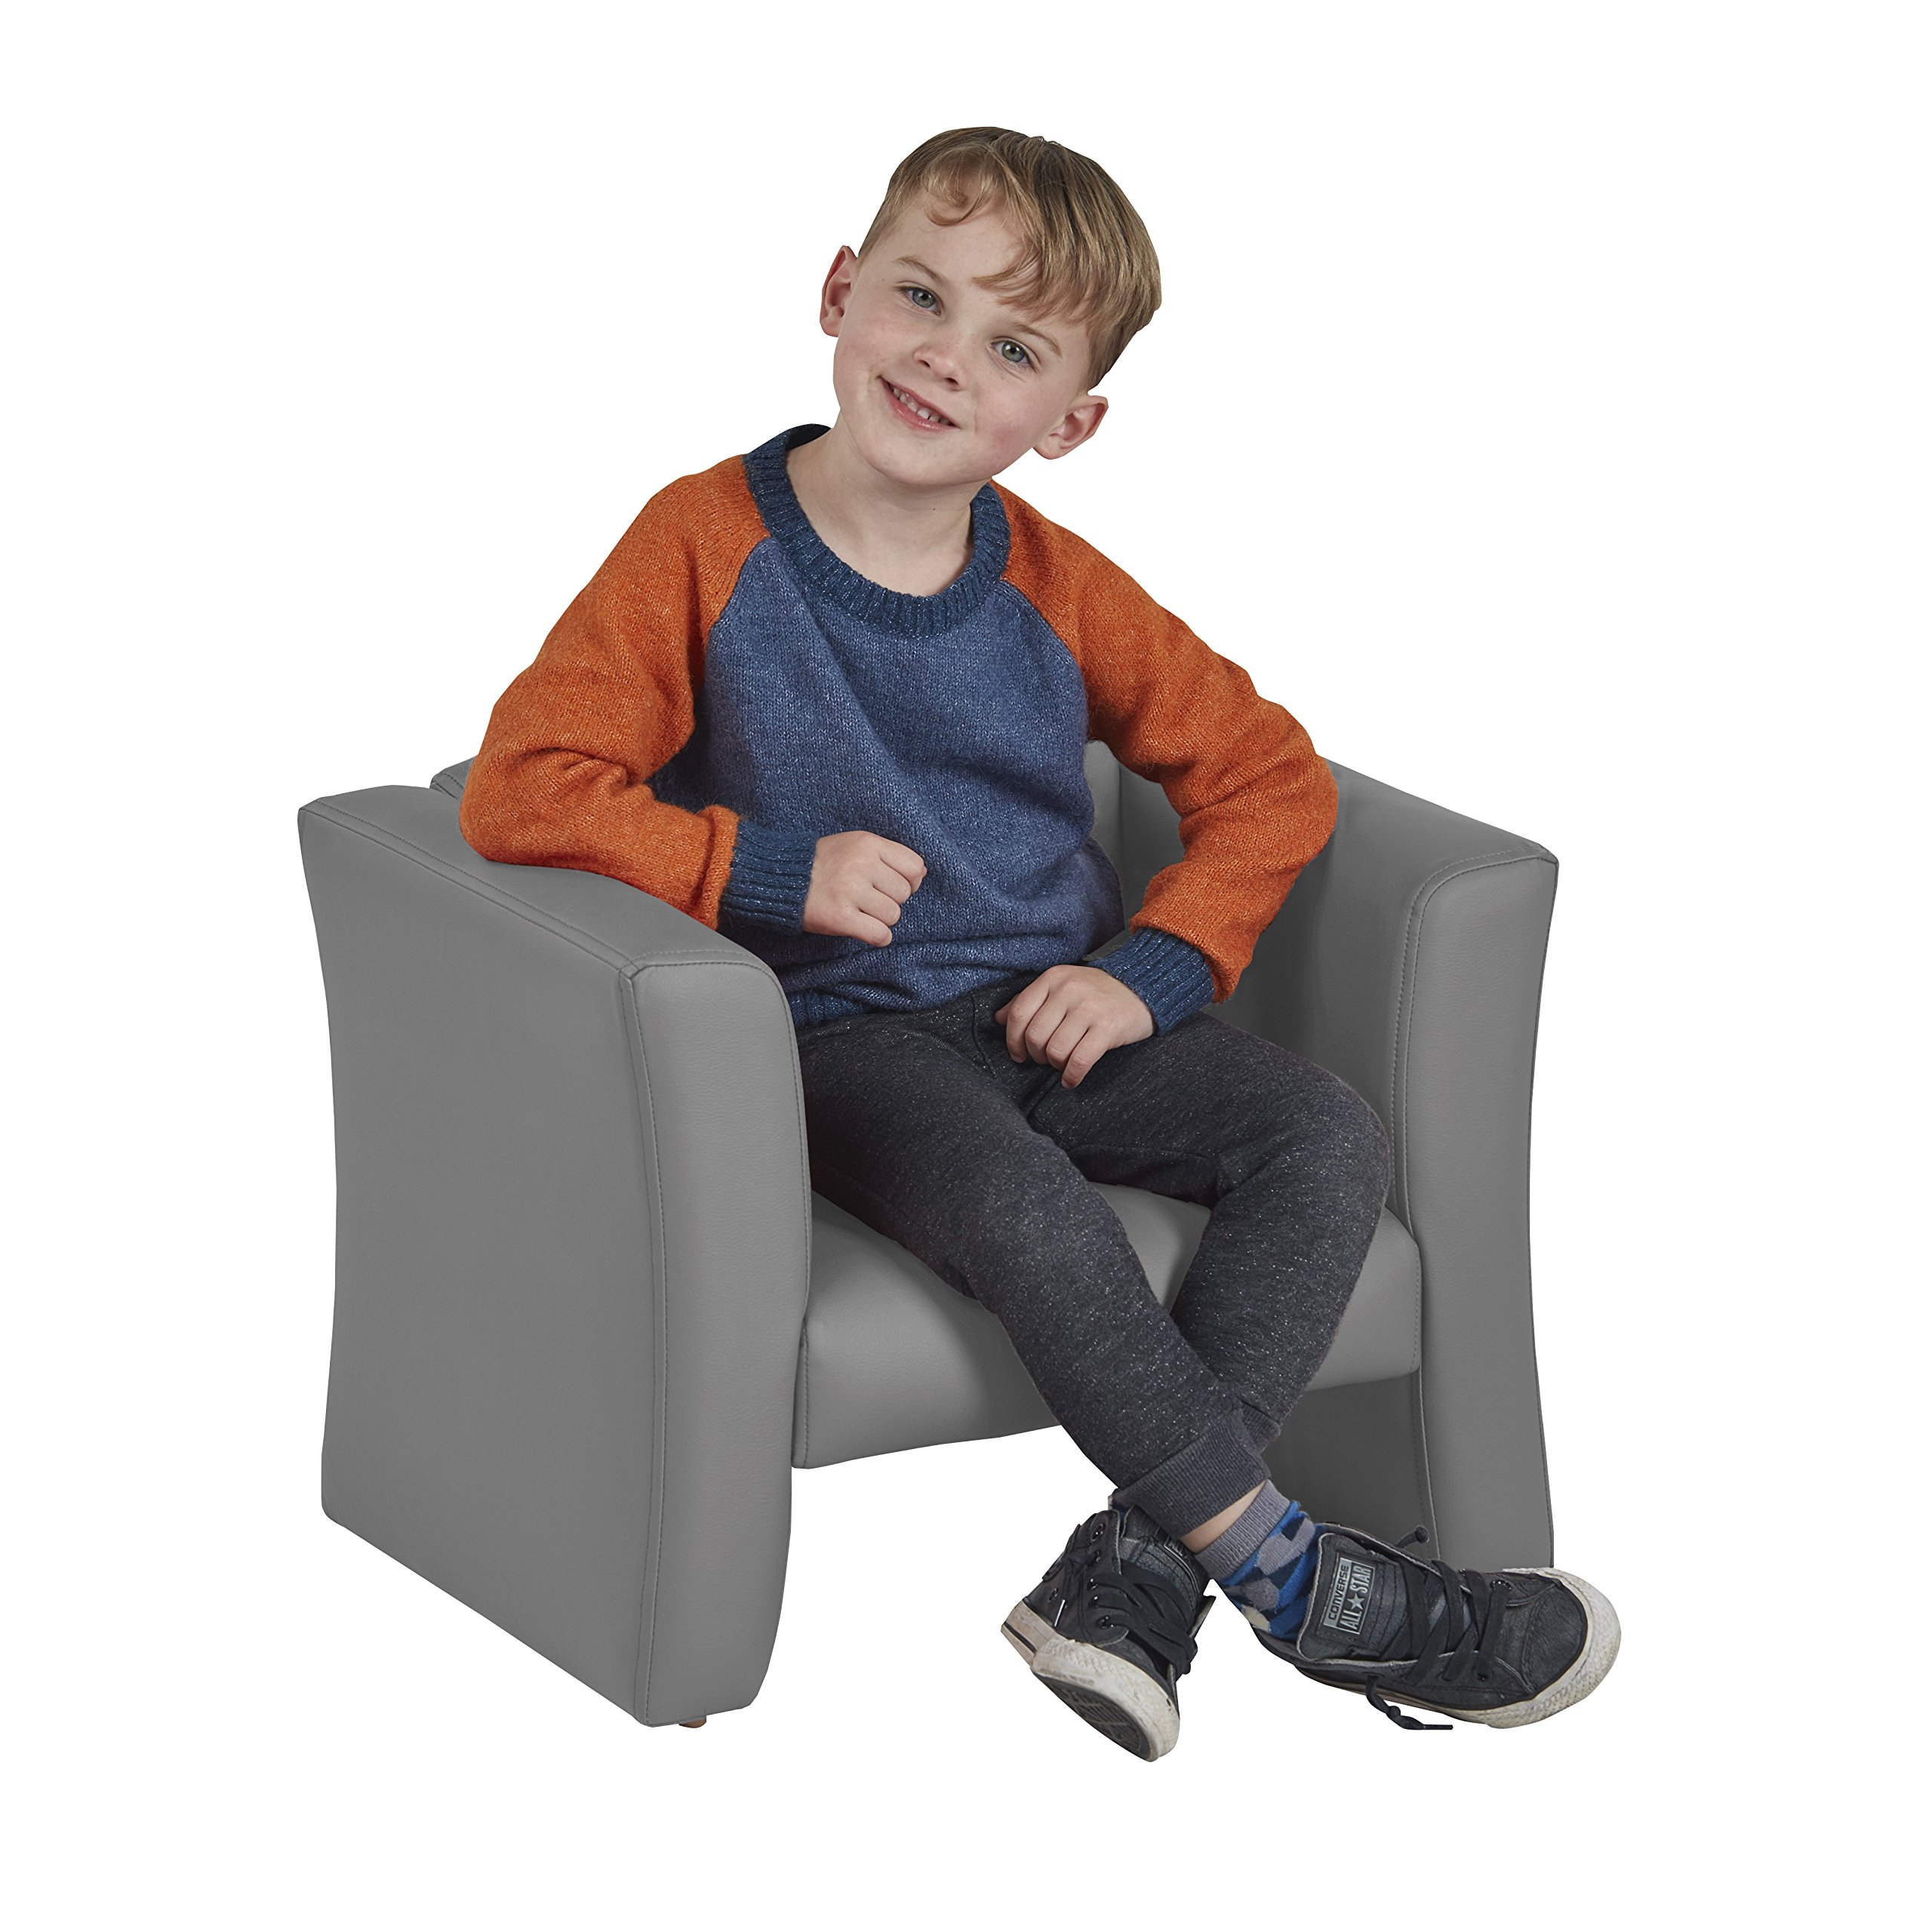 ECR4Kids SoftZone Gum Drop Upholstered Chair for Kids - Daycare, Homeschool, Classroom Furniture, Home Decor - Grey